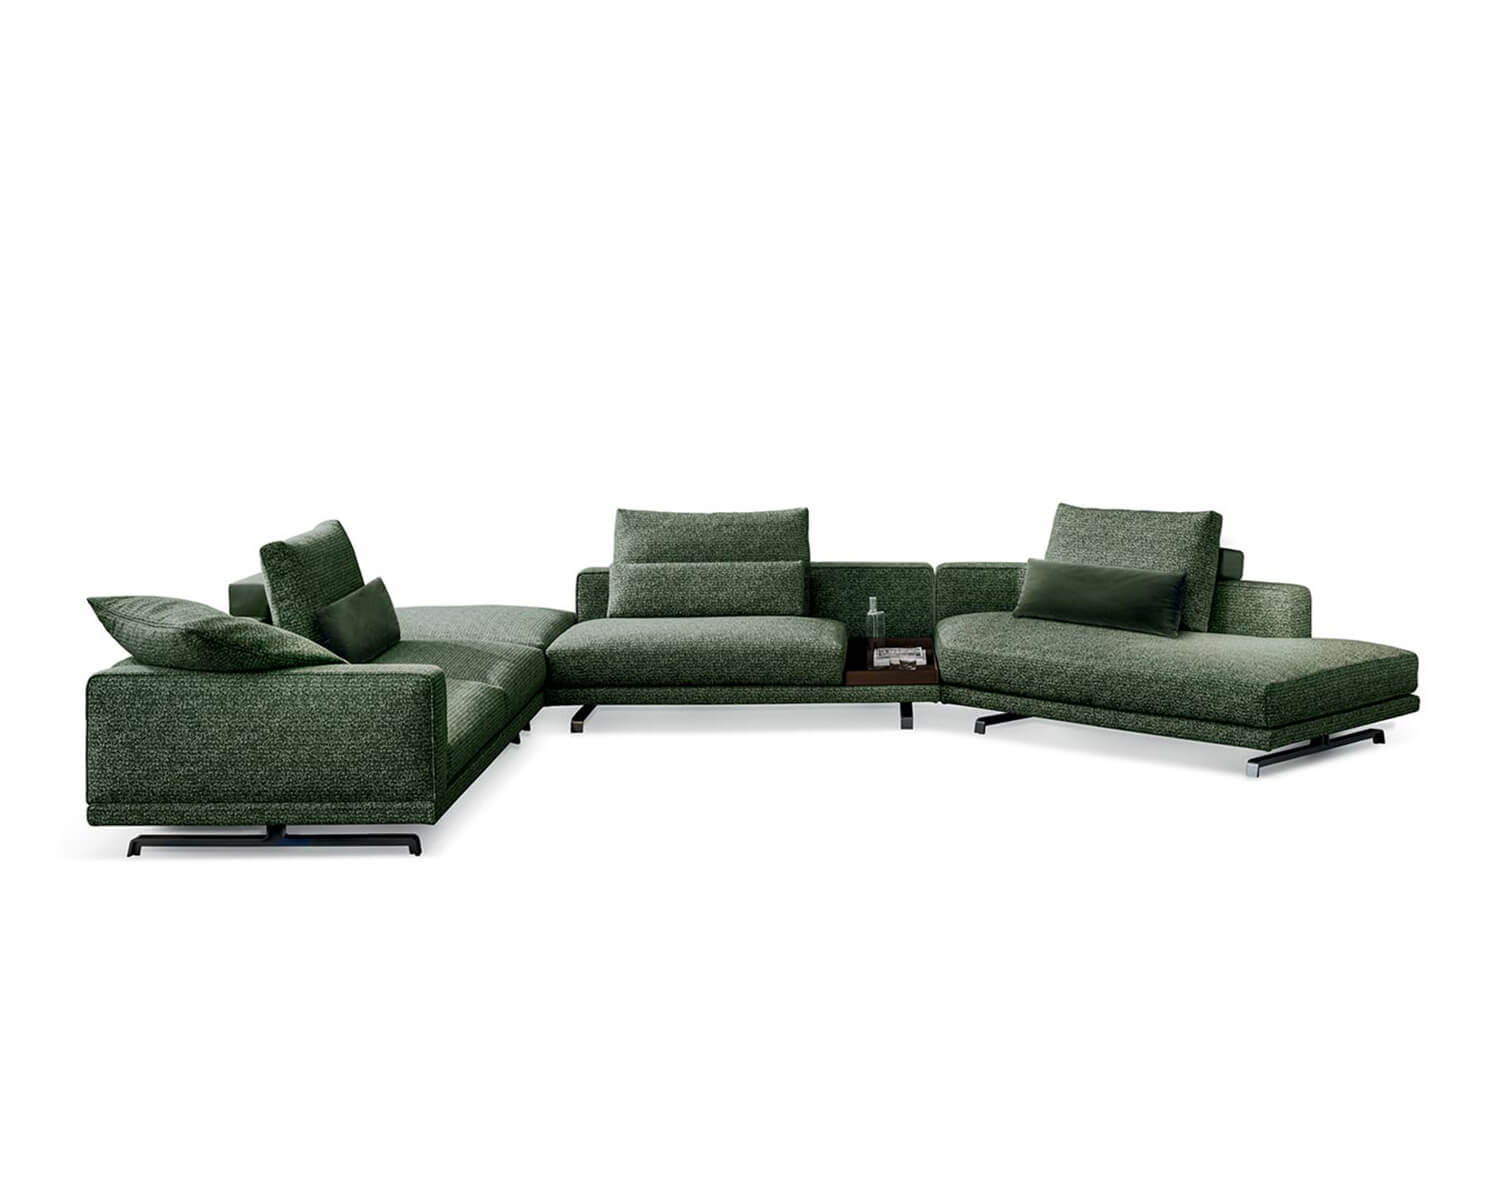 Front view of green Octave modular sectional on a white background